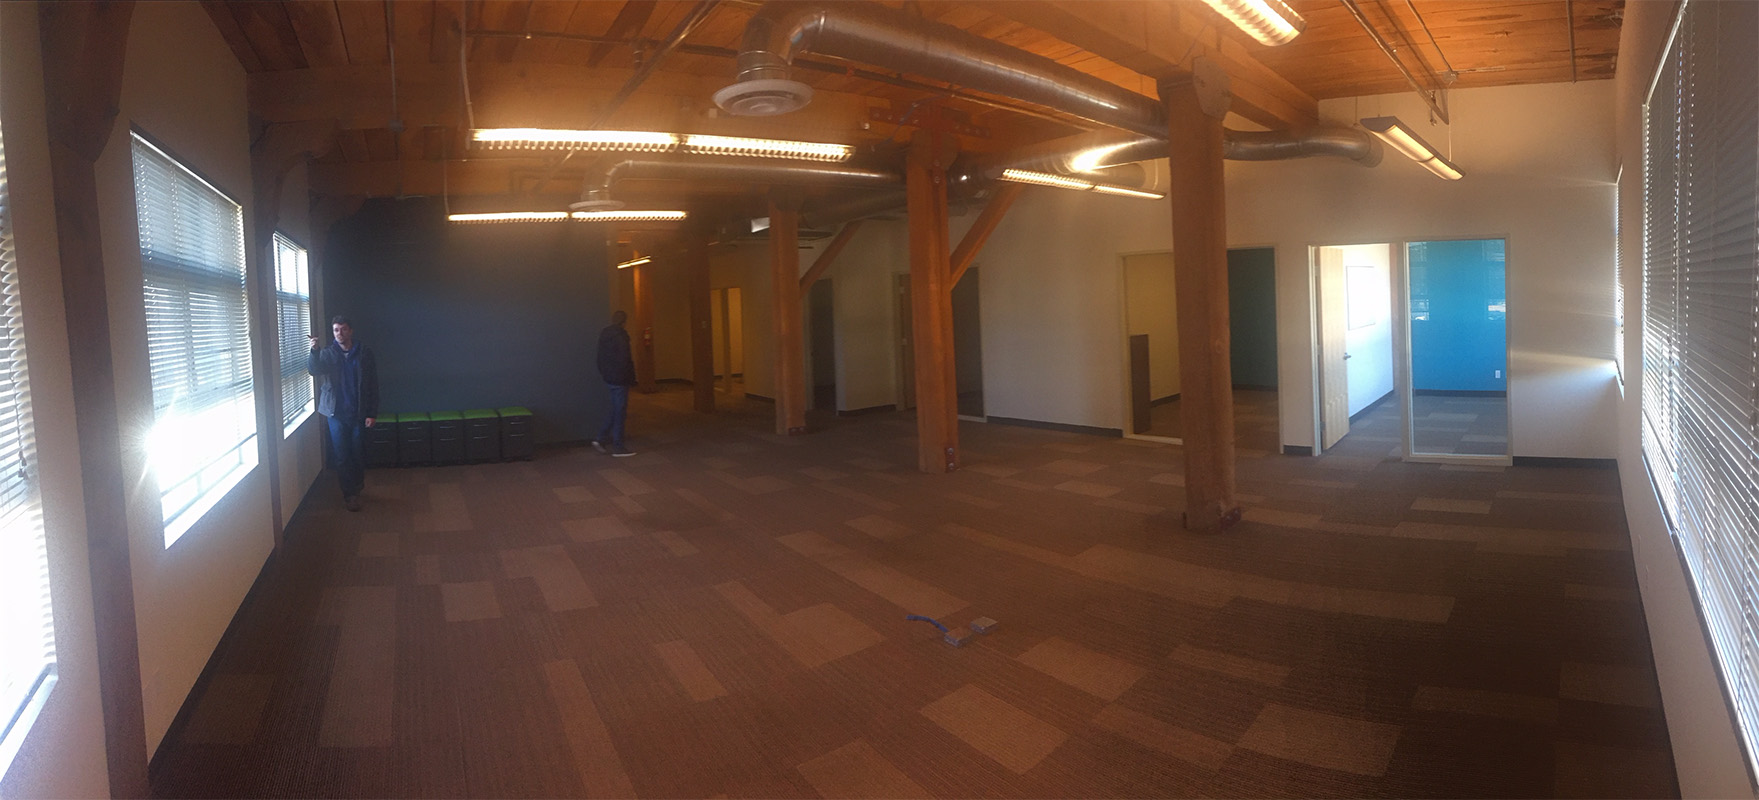 A couple of us checking out our new office before the official move-in. That's me on the left.